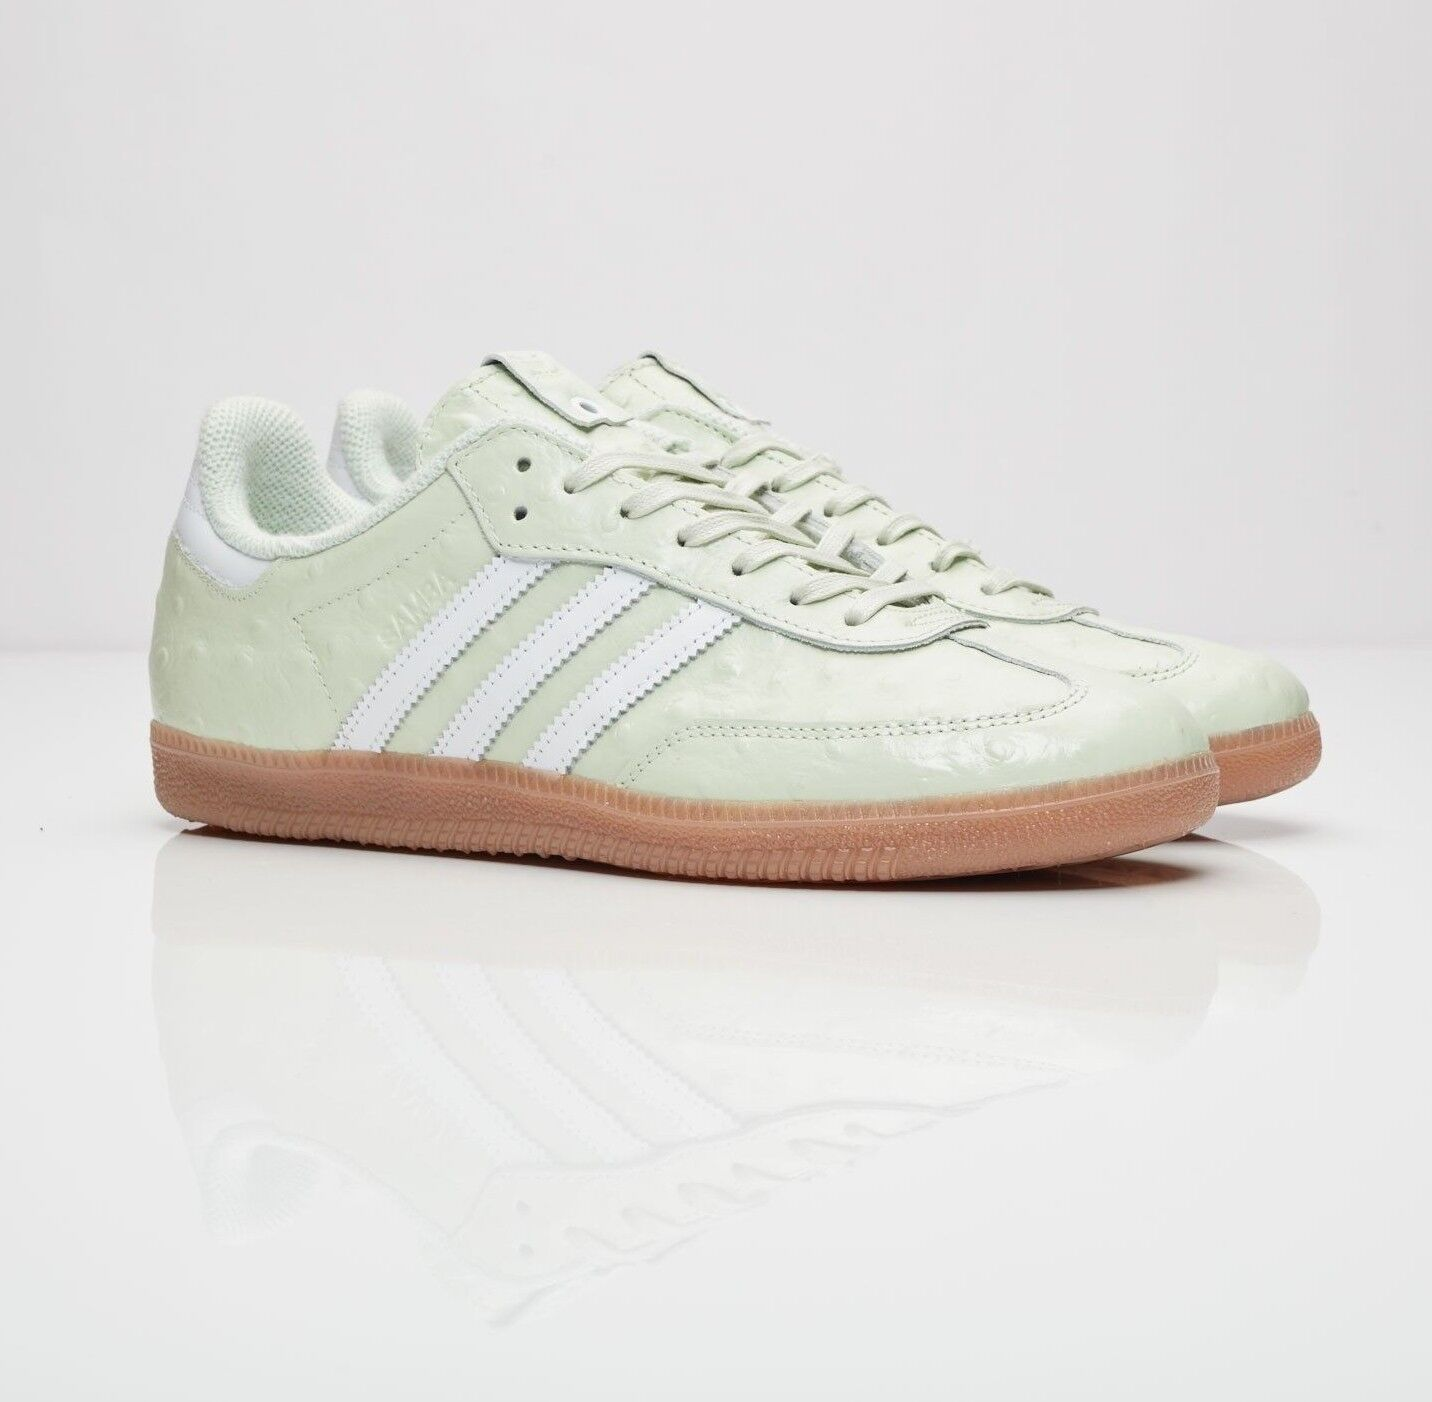 Adidas Men's Consortium Naked Samba Waves Panton White BB1144 FAST SHIP